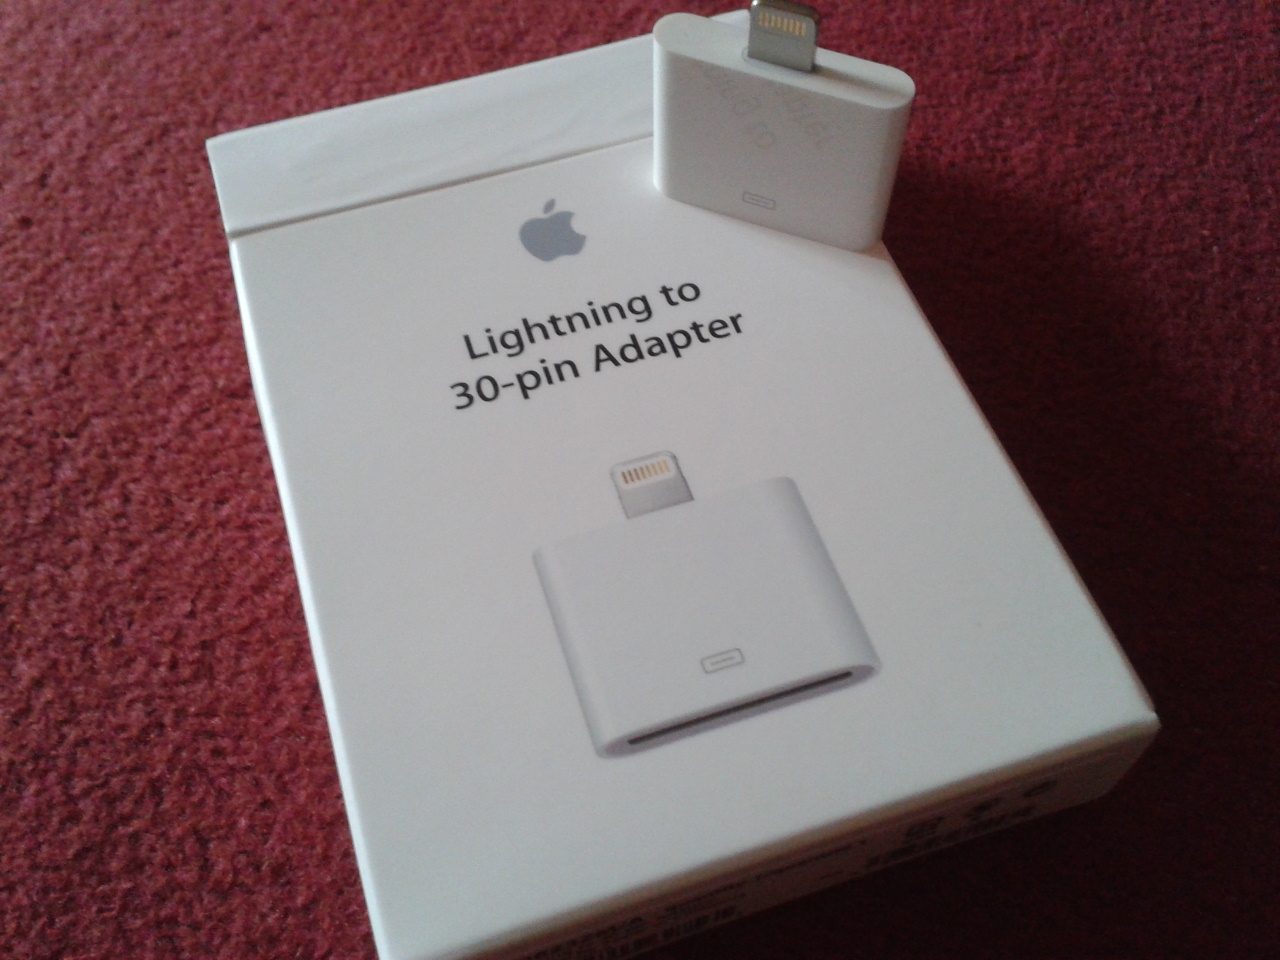 Apple Lightning Adaptor on Box